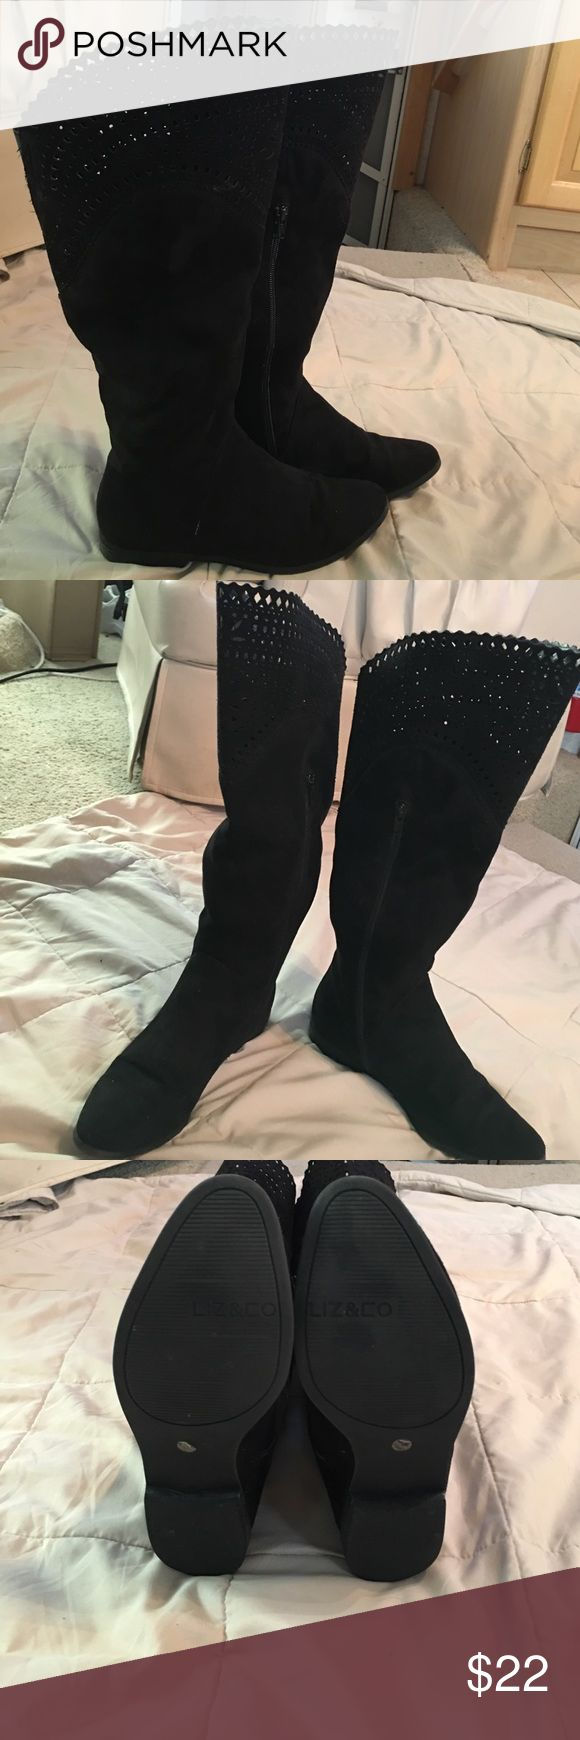 Liz & Co - Beautiful Black Thigh High Boots Liz & Co - Beautiful Black Thigh High Boots  Size 7 Gently Used - Very Clean - Liz Claiborne Shoes Heeled Boots